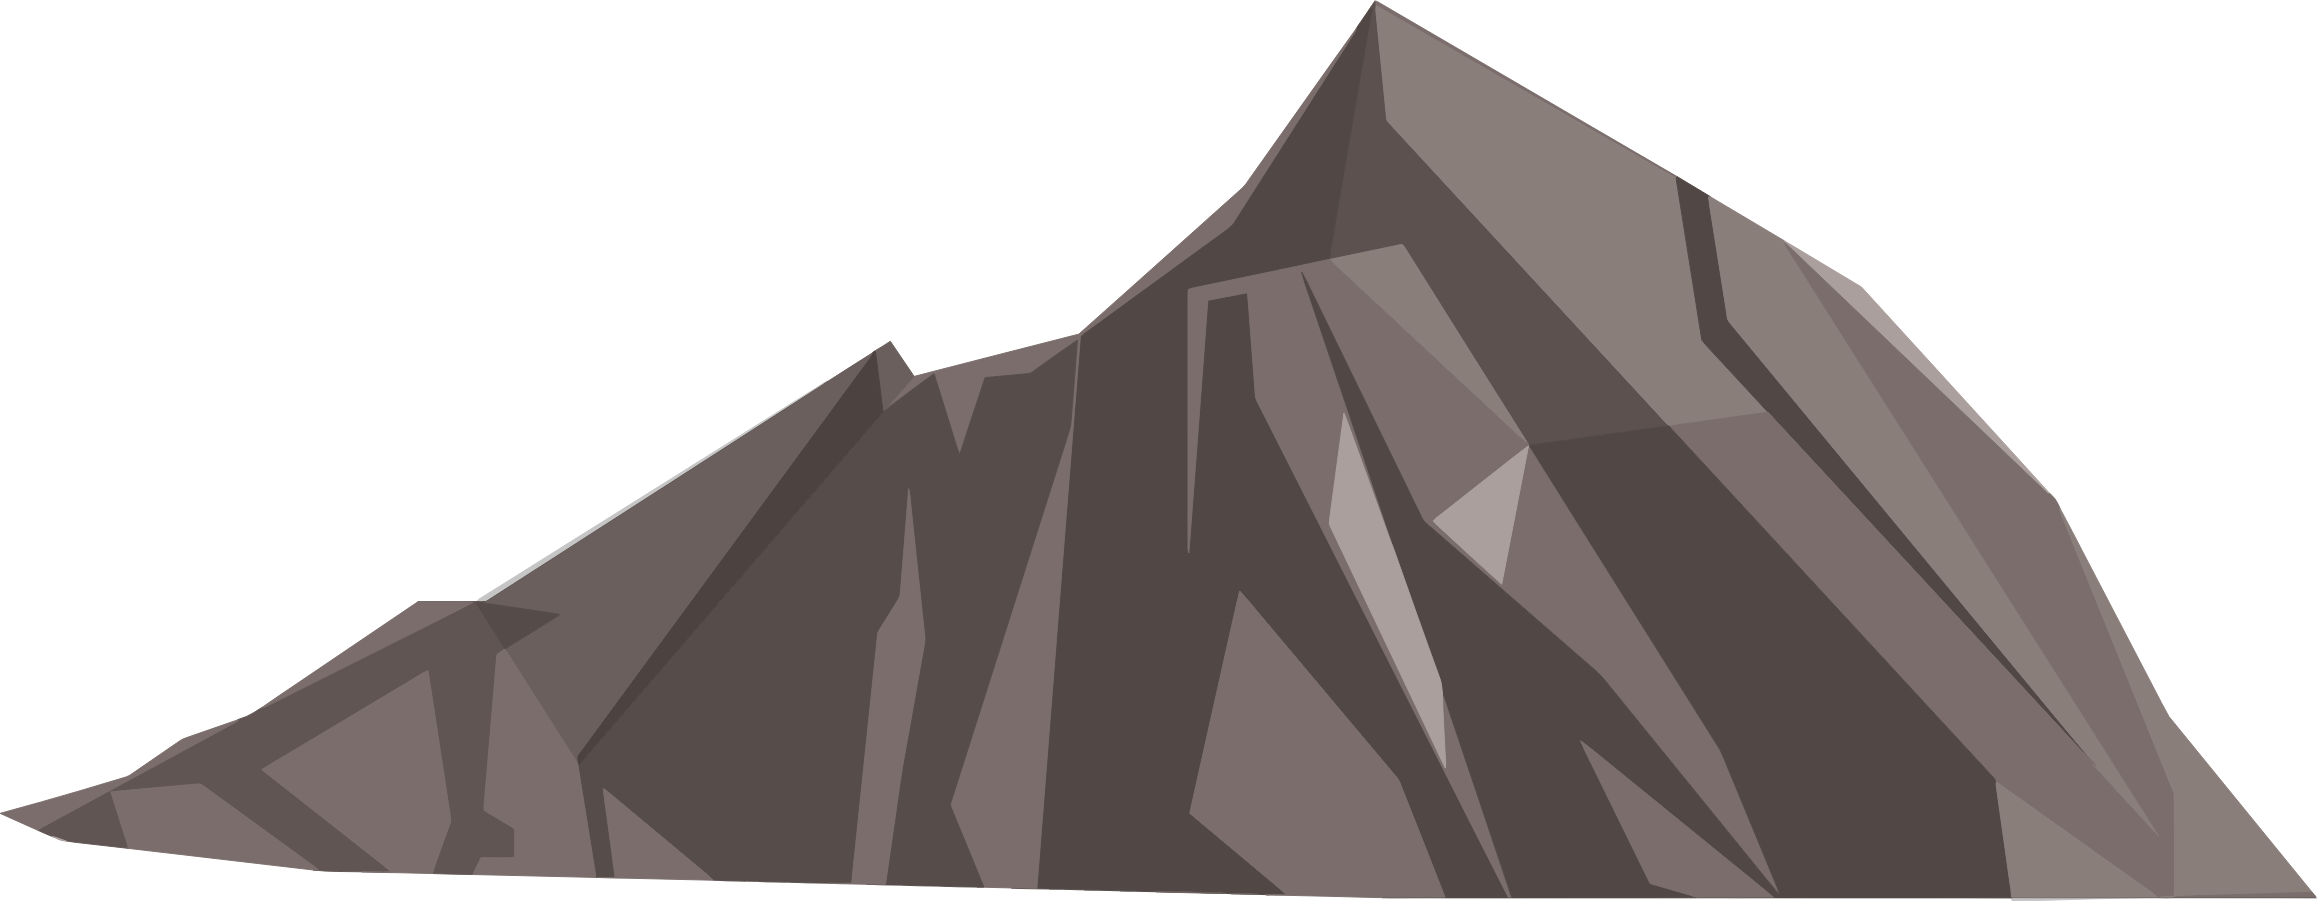 Hills clipart mountain range. Png transparent free images